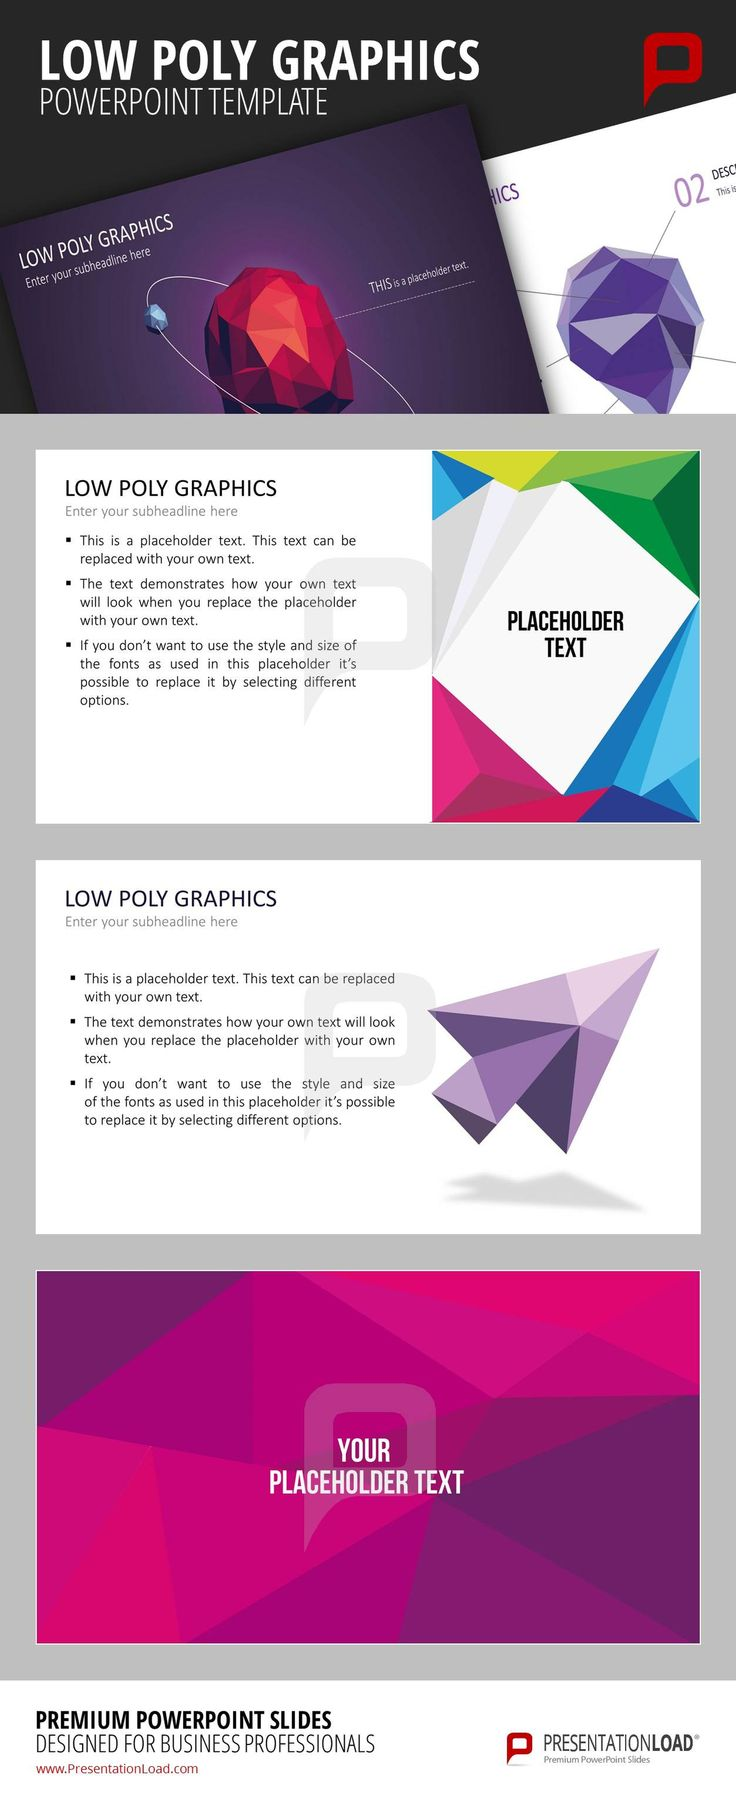 Follow new design trends and work with Low Poly Graphics in your next PowerPoint presentation. The interesting forms and the powerful colors make an excellent impression. @ http://www.presentationload.com/low-poly-graphics.html